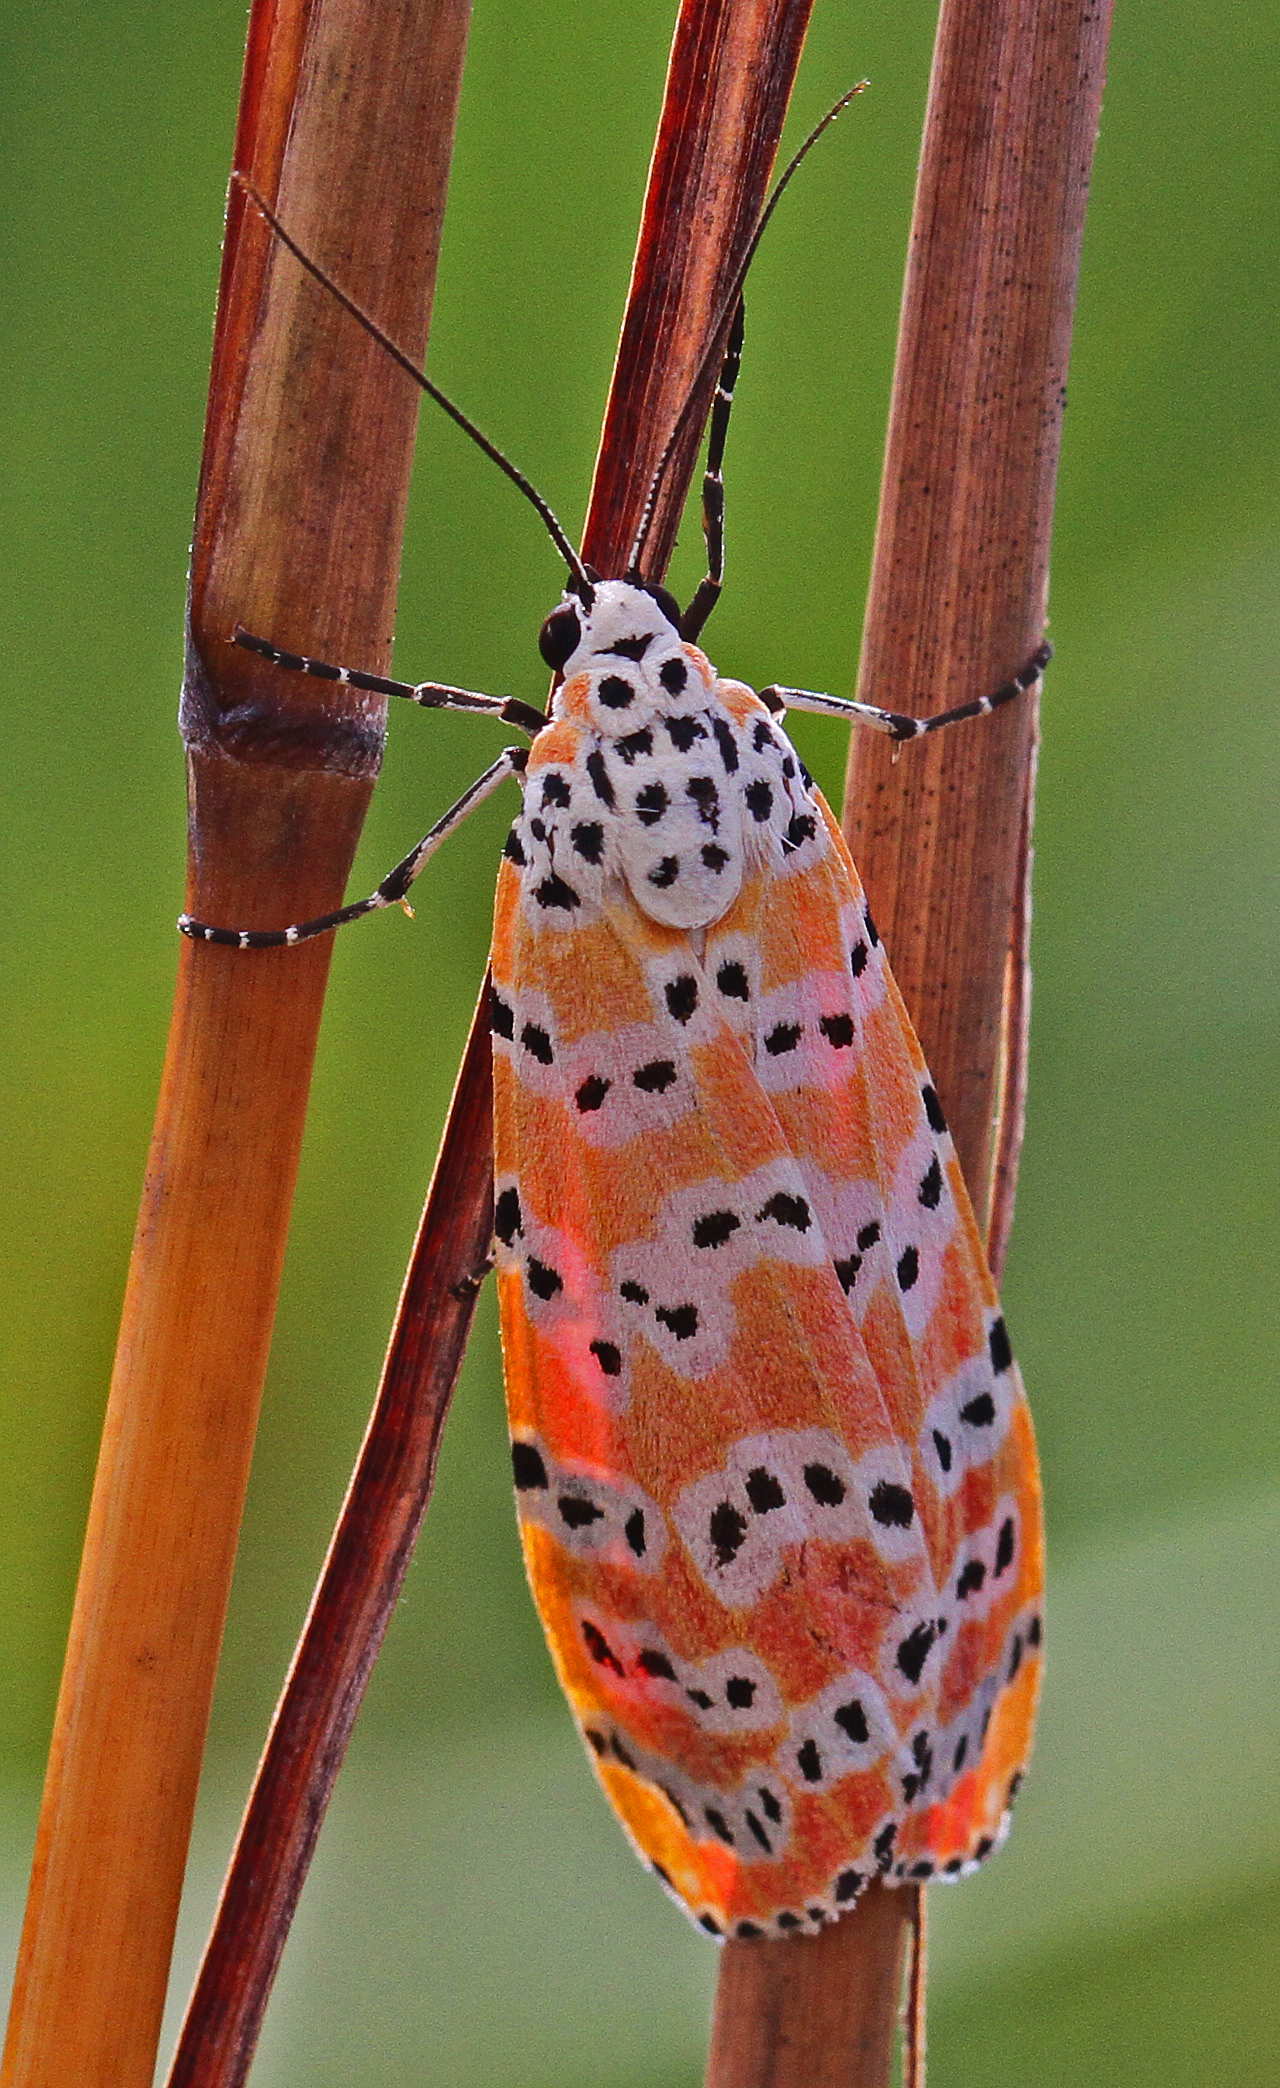 File:Rattlebox Moth - Utetheisa ornatrix, Long Pine Key